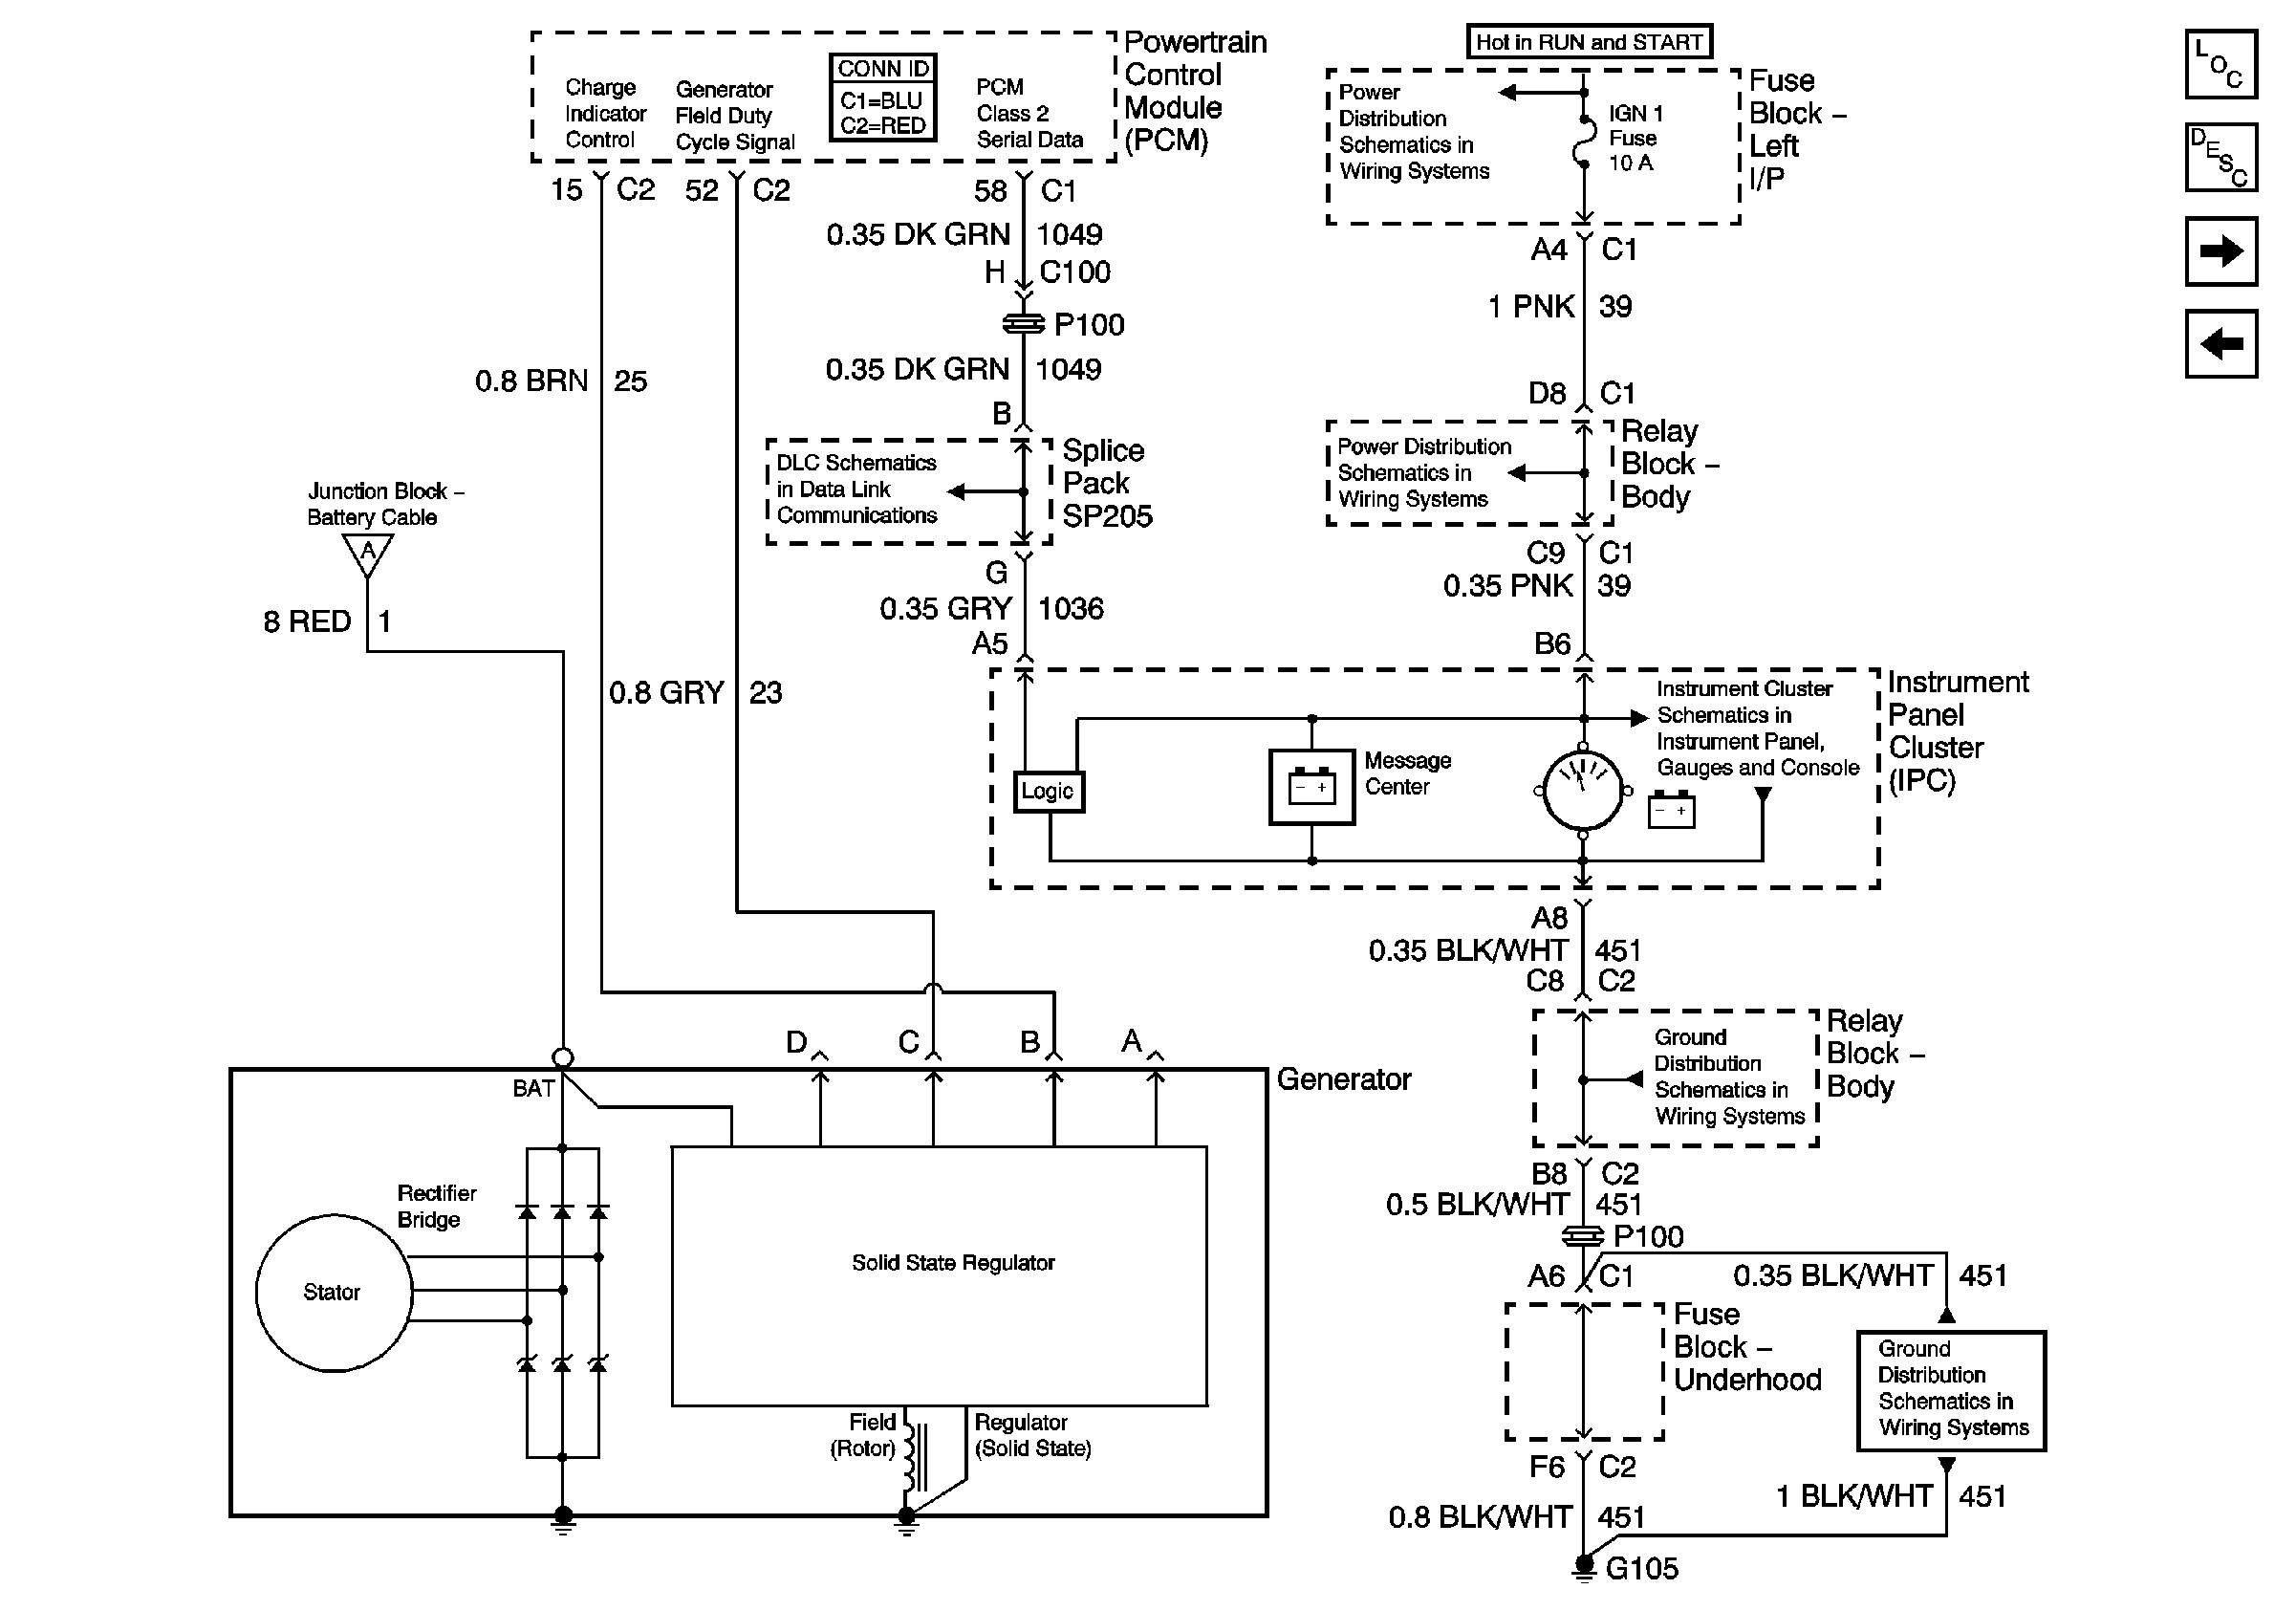 [DIAGRAM_4PO]  Trailblazer Wiring Schematic - 3 Way Guitar Switch Wiring Diagram Blade for Wiring  Diagram Schematics | 02 Trailblazer Wiring Diagram Free Download |  | Wiring Diagram Schematics